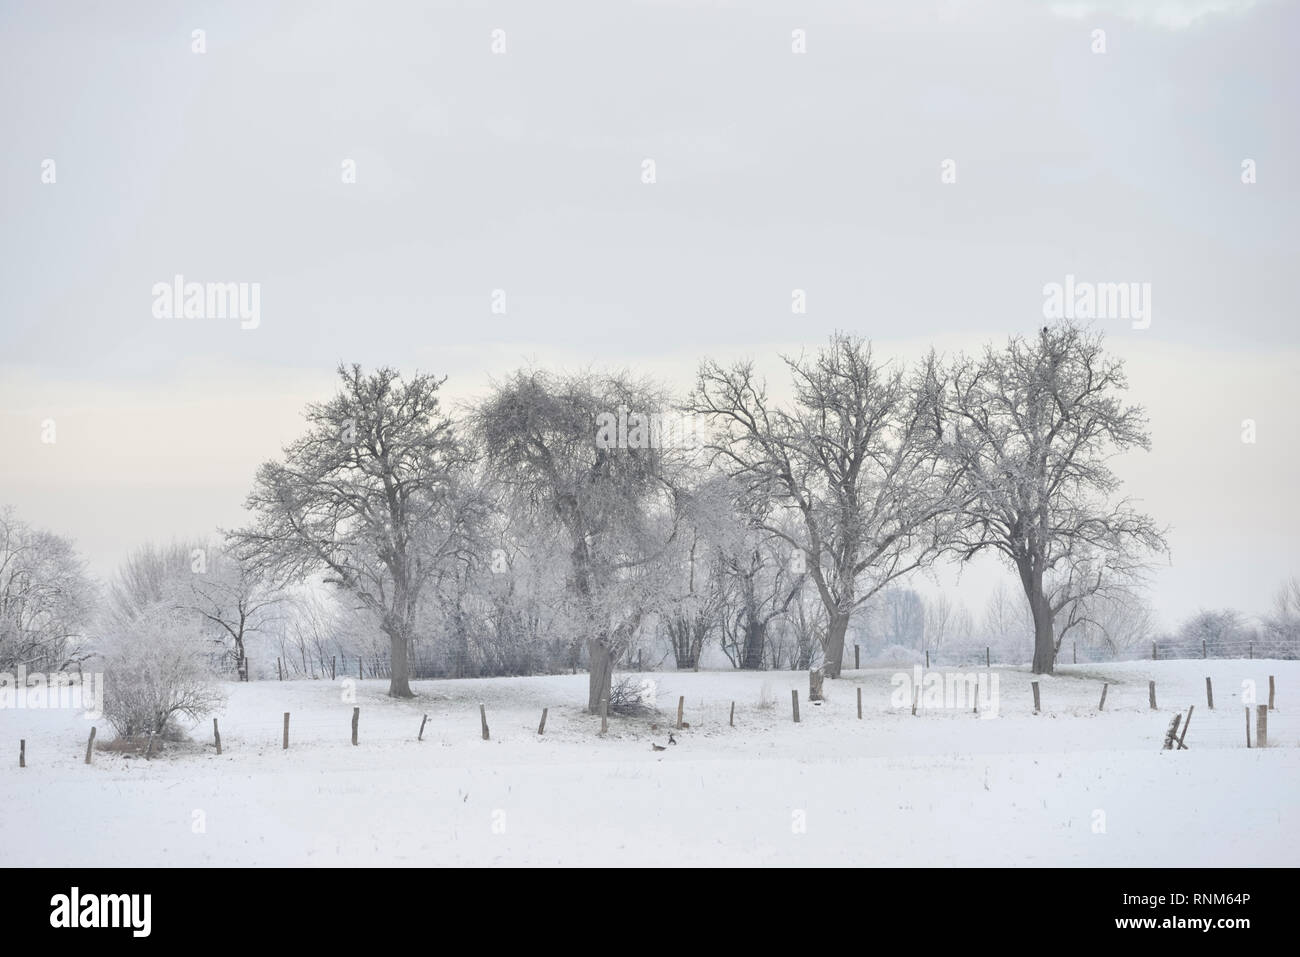 Hoar frosted trees and bushes in rural surrounding on Bislicher Insel / Bislicher Island, typical view, Lower Rhine region, North Rhine Westfalia, Ger - Stock Image